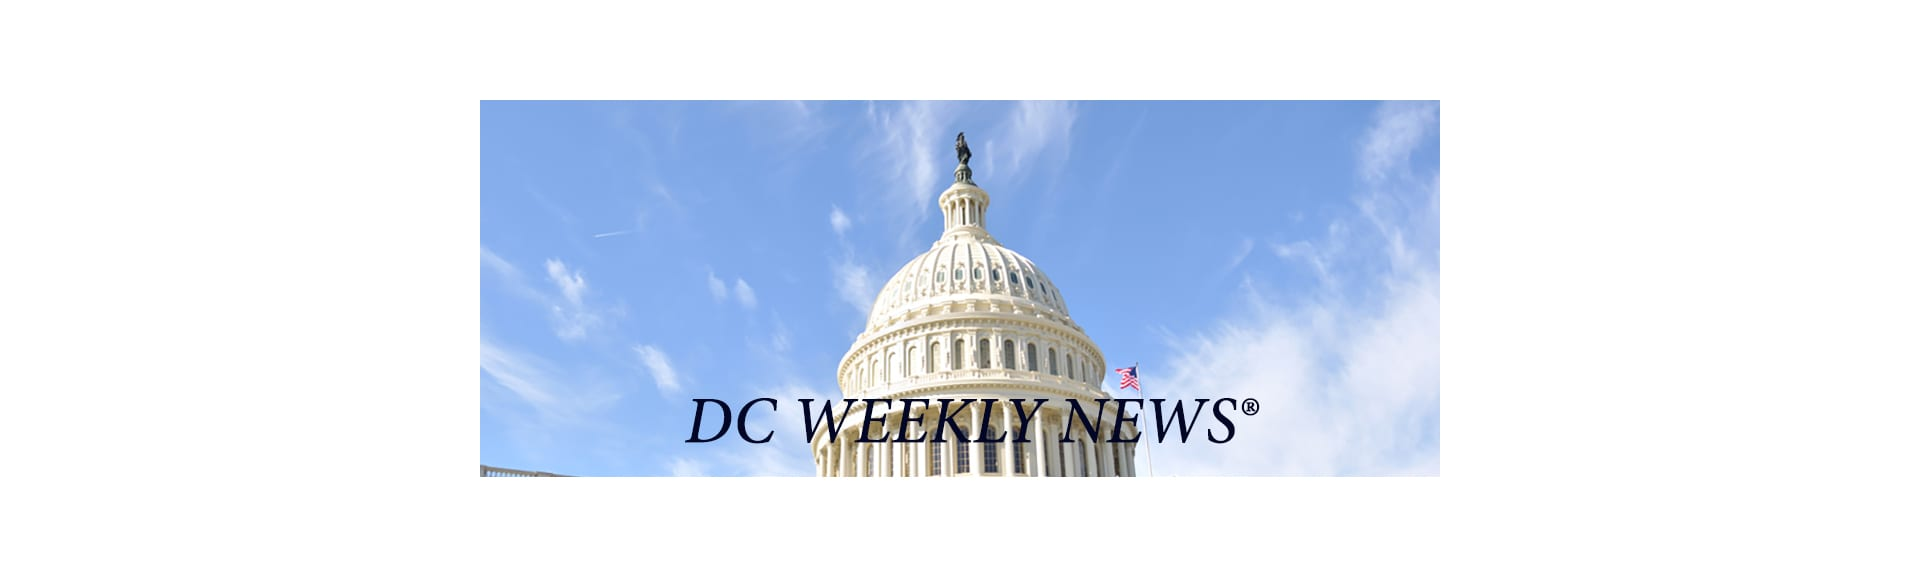 DC WEEKLY NEWS®